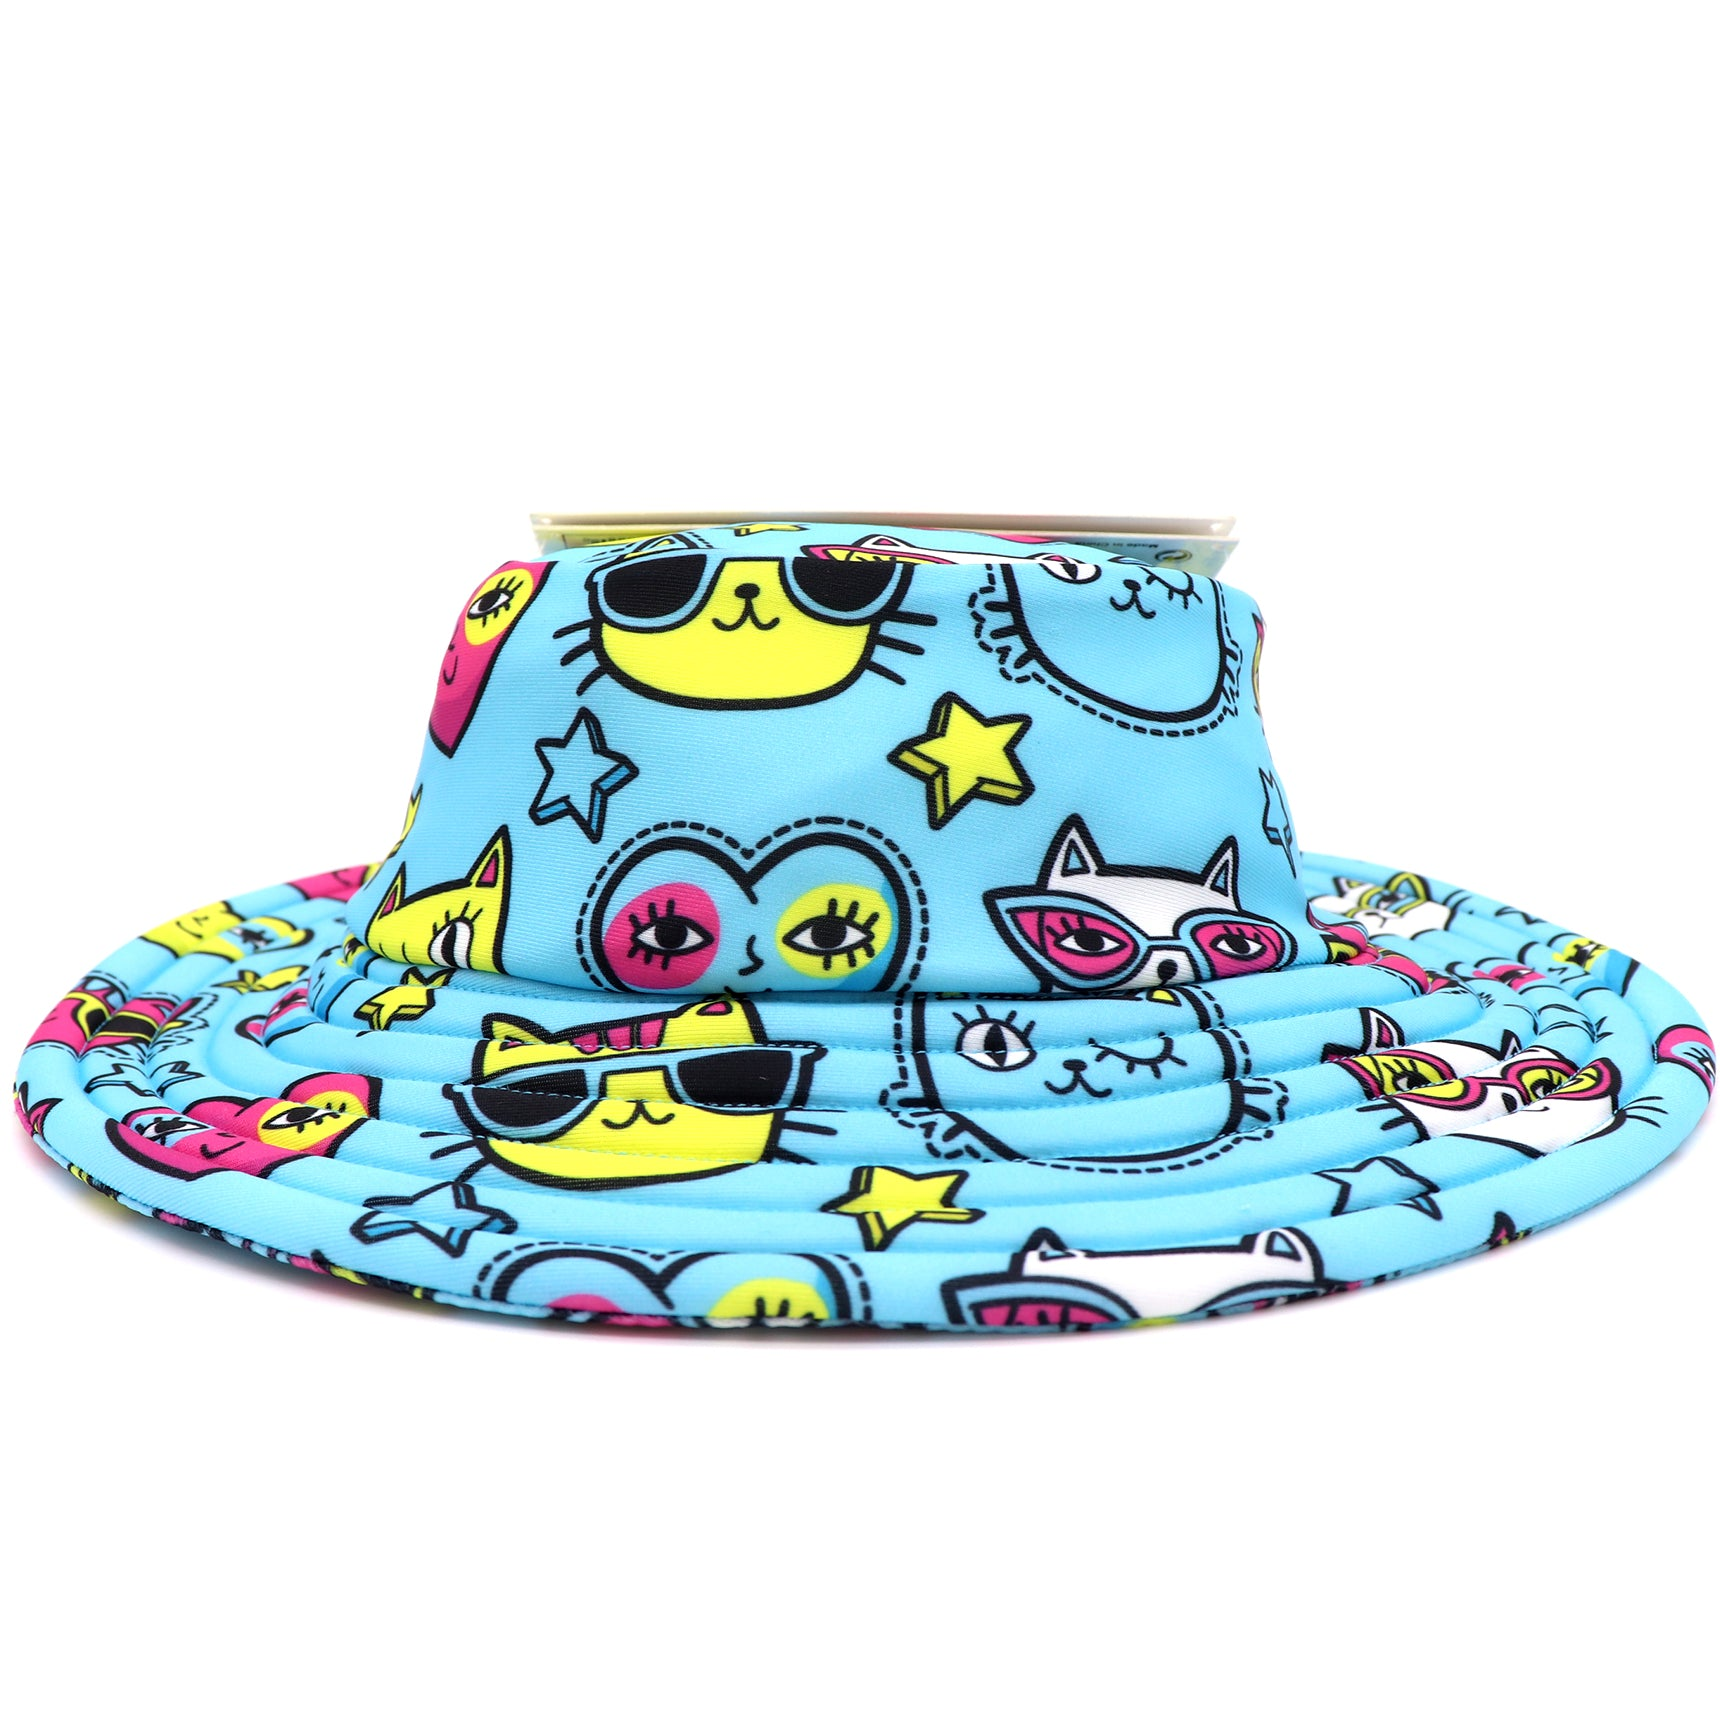 Turquoise Beach Bucket hat for kids with a pattern of kitten faces wearing sunglasses and winking, hearts, and stars